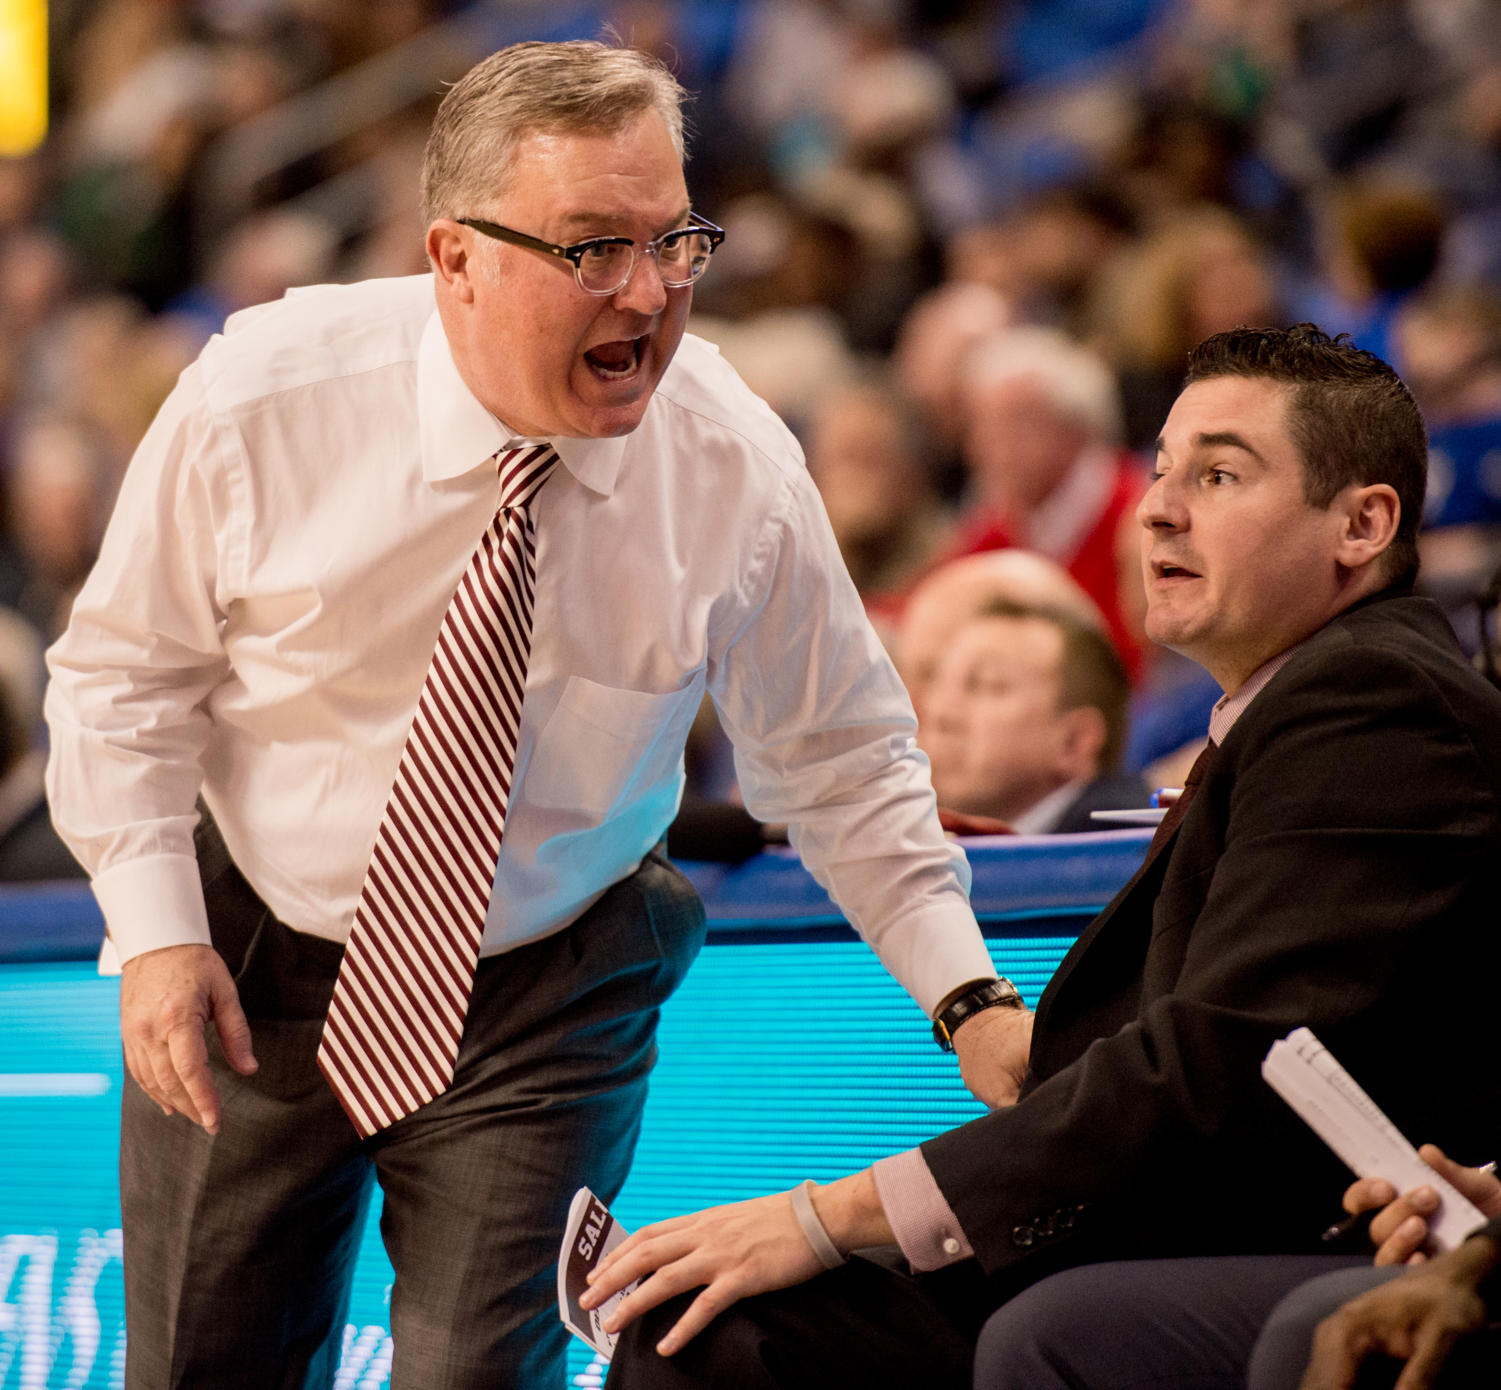 Coach Barry Hinson reacts to a play Wednesday, Dec. 6, 2017, during the Salukis' 69-74 loss against the St. Louis University Billikens at Chaifetz Arena in St. Louis, Missouri. (Brian Muñoz | @BrianMMunoz)